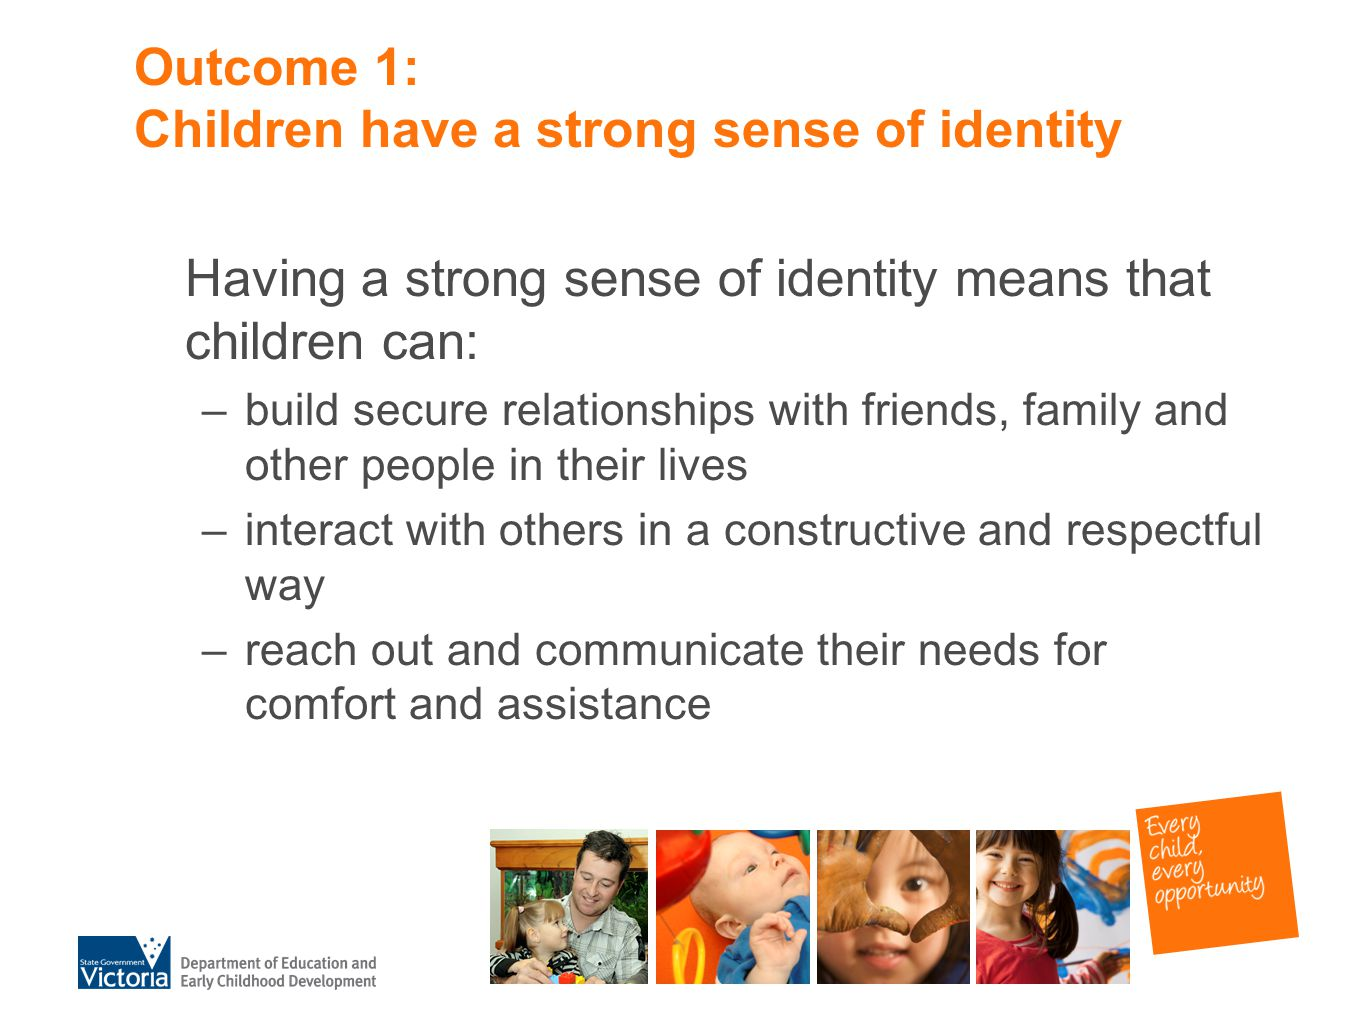 Outcome 1: Children have a strong sense of identity